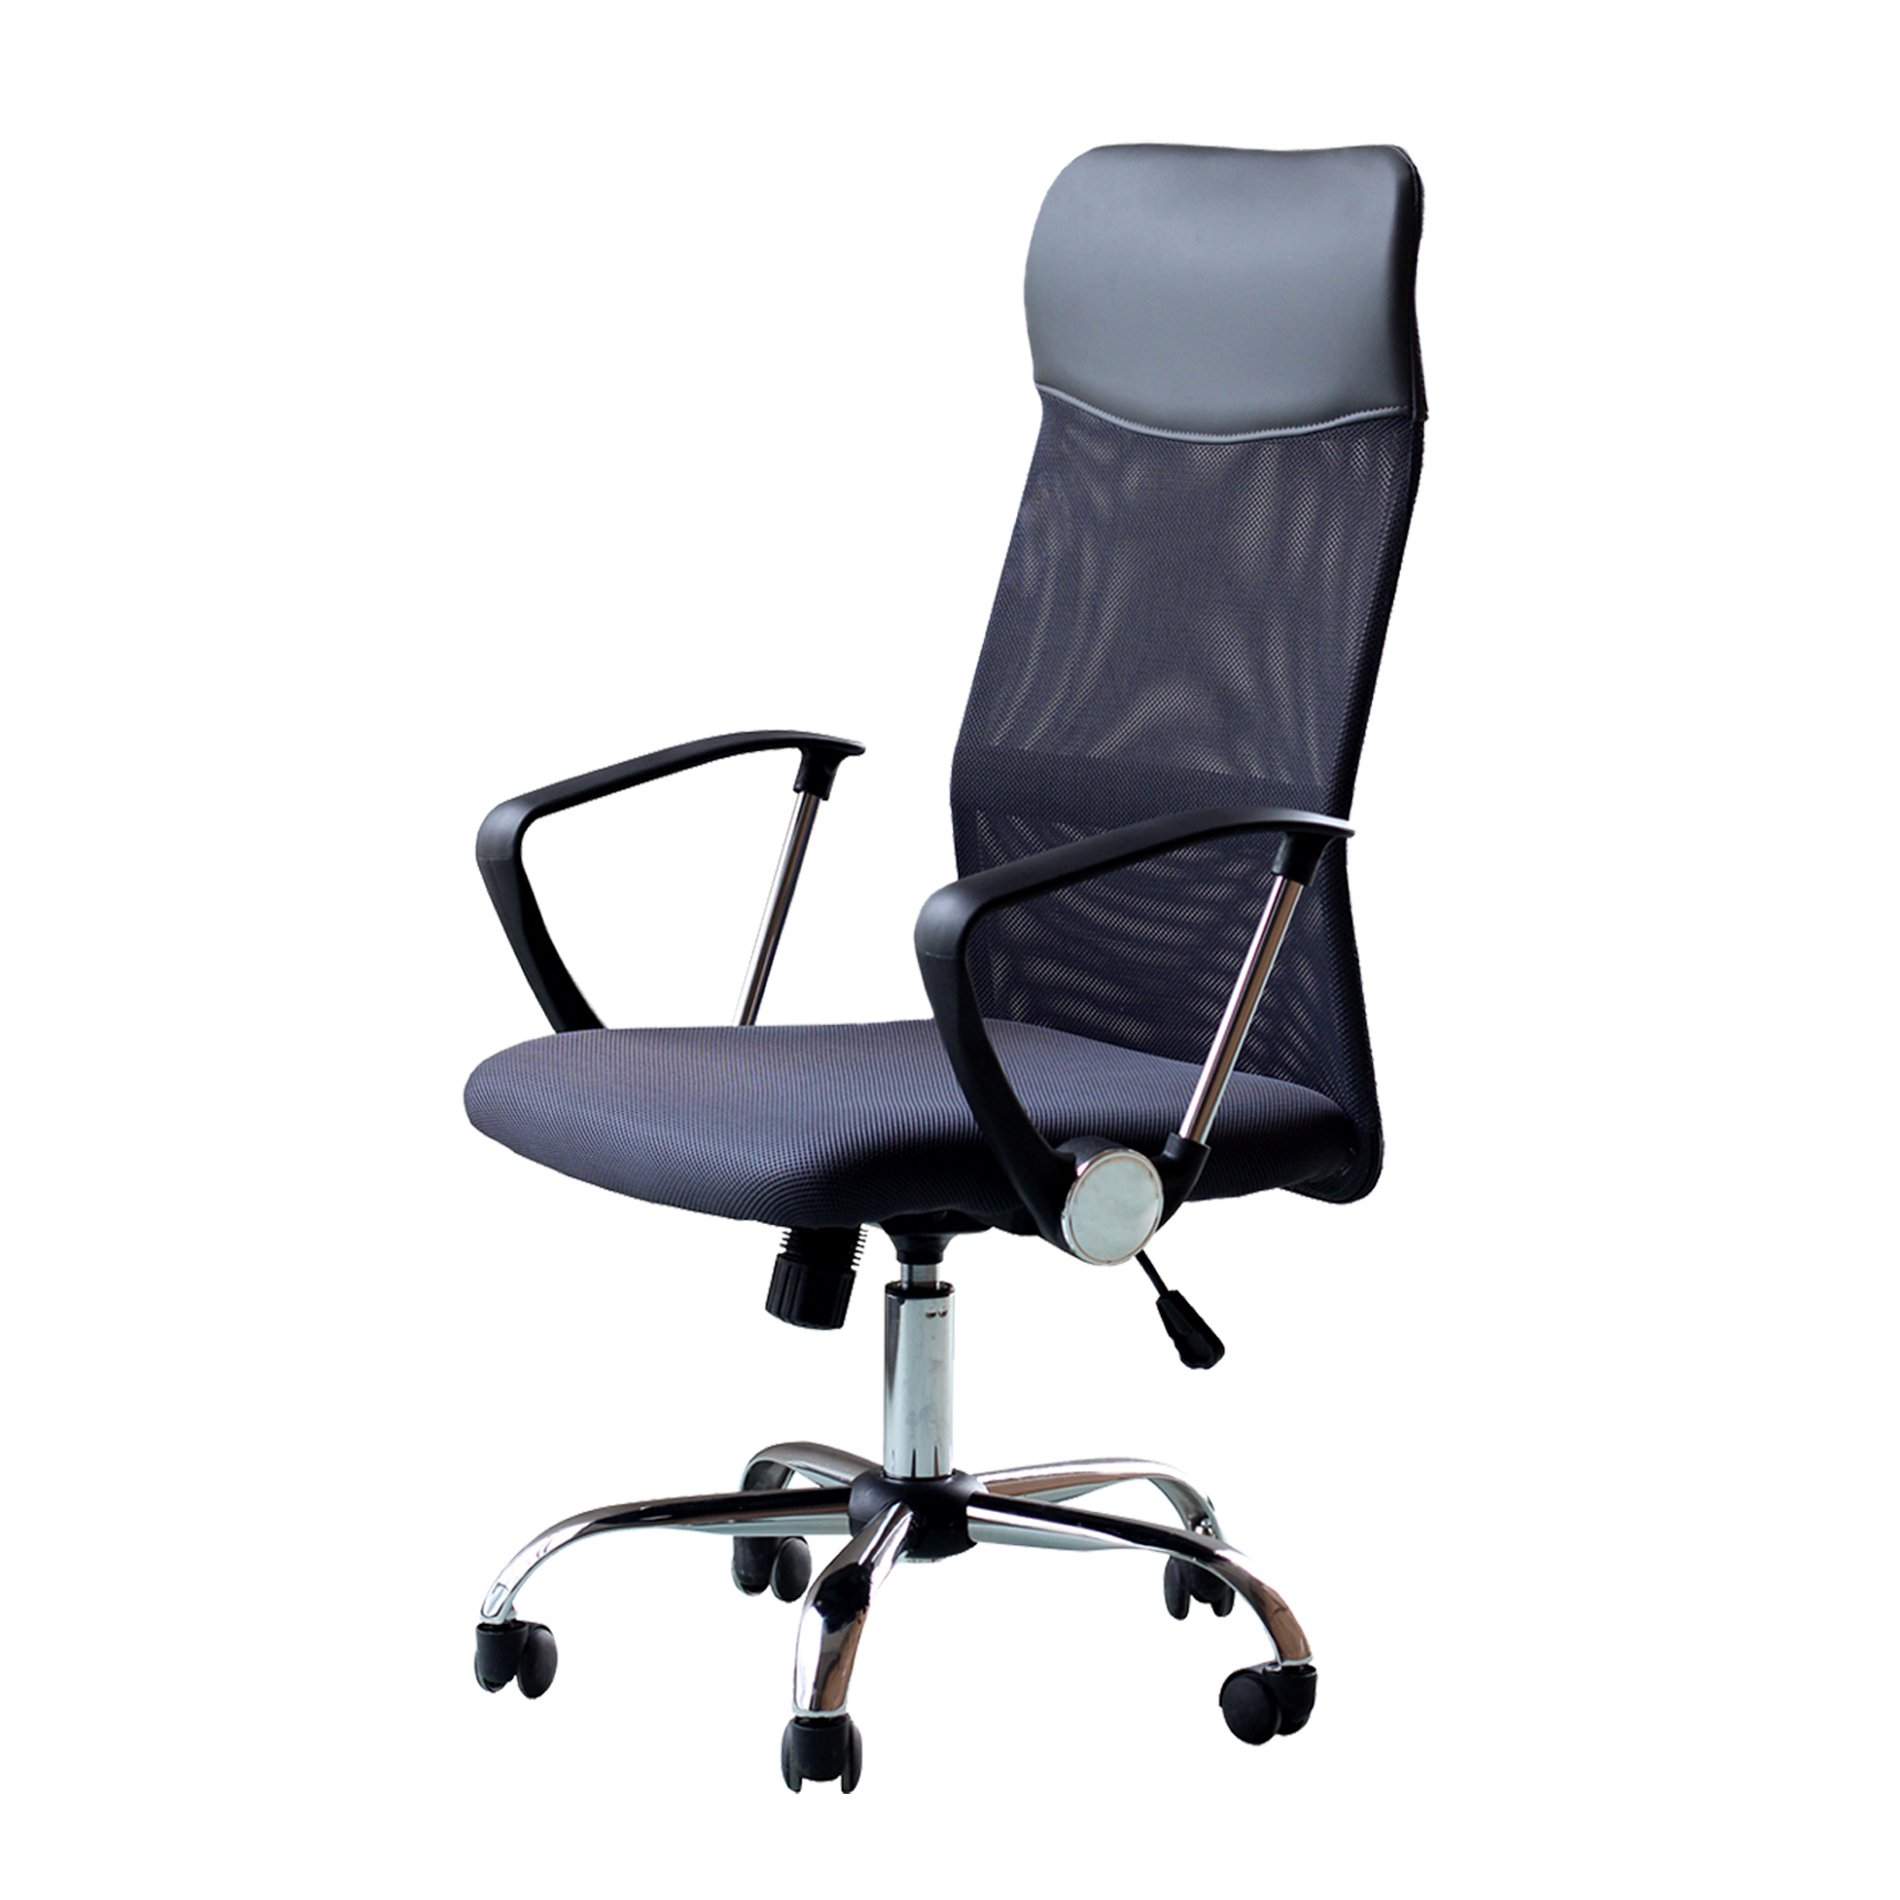 IDS Home Office Chair Mesh High Back Ergonomic Design With Arms PU Headrest Height Adjustable Desk Drafting Chair Dark Gray